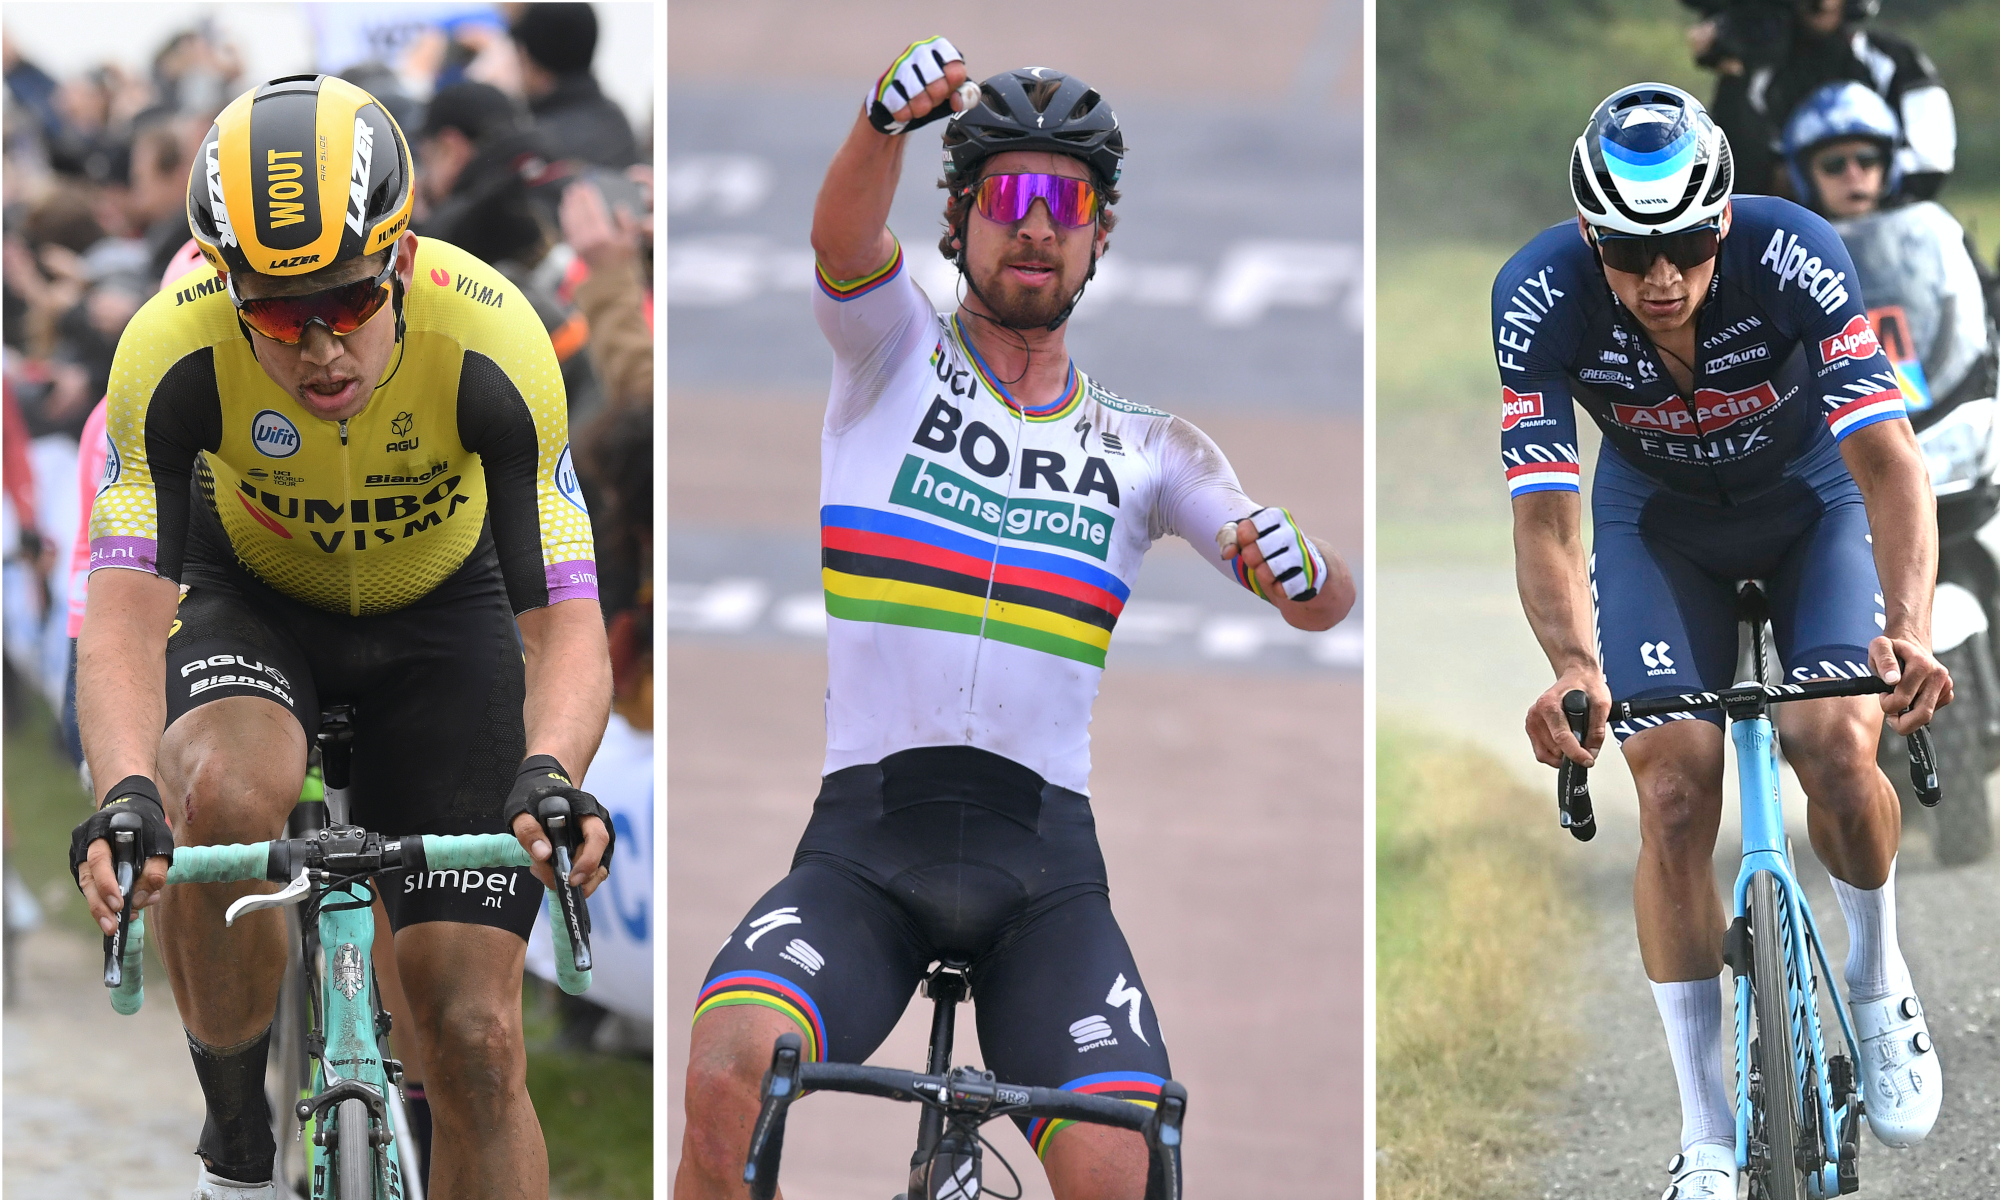 The riders to watch at the 2021 Paris-Roubaix